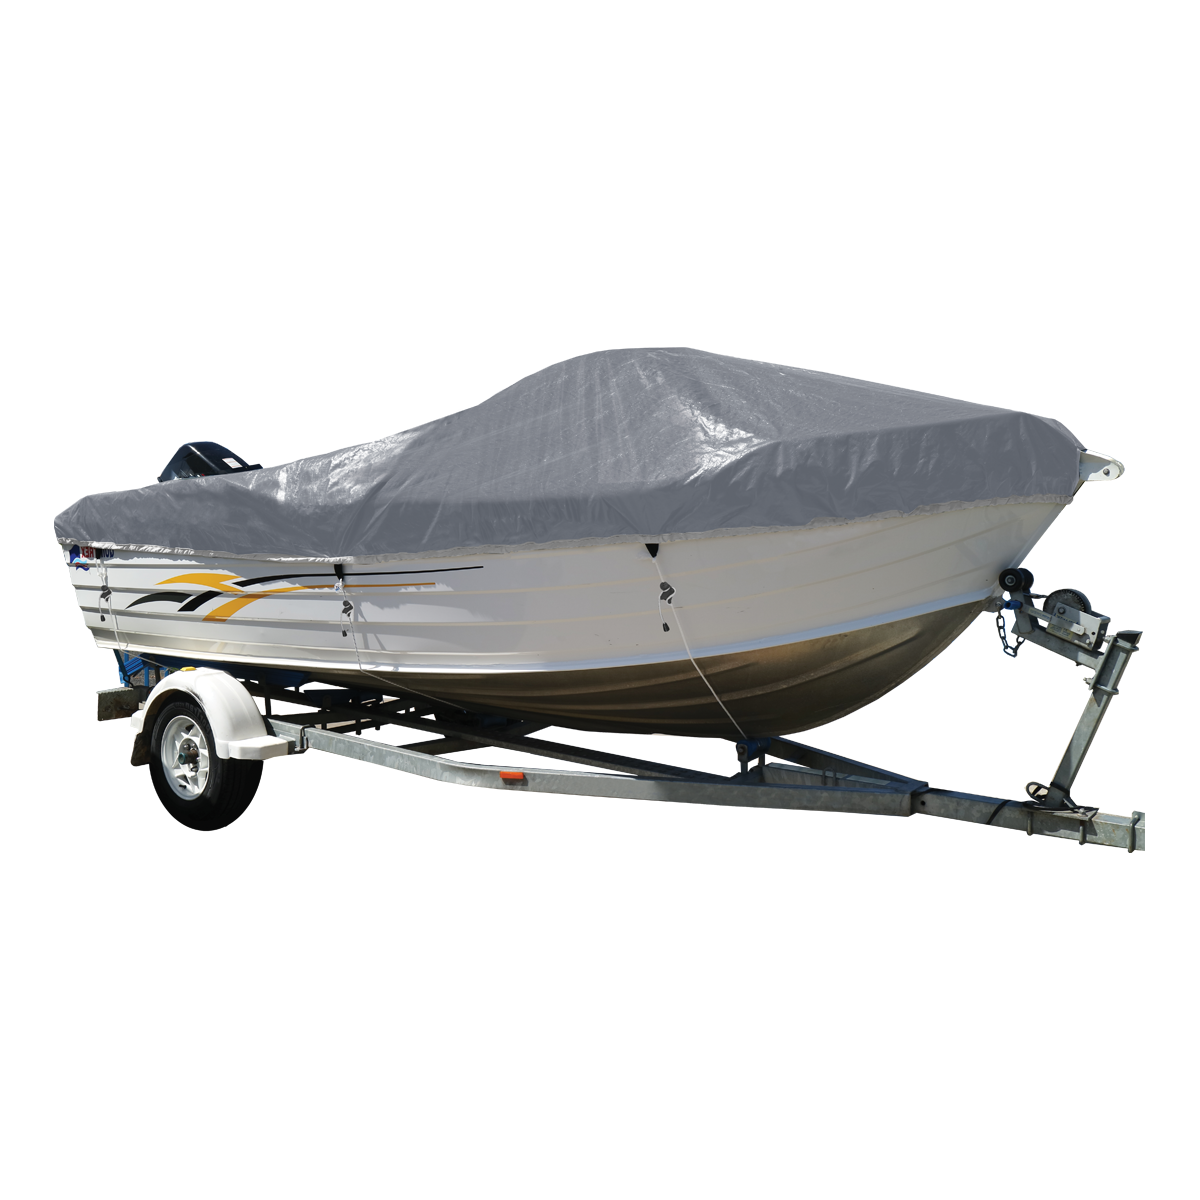 Oceansouth Boat Covers